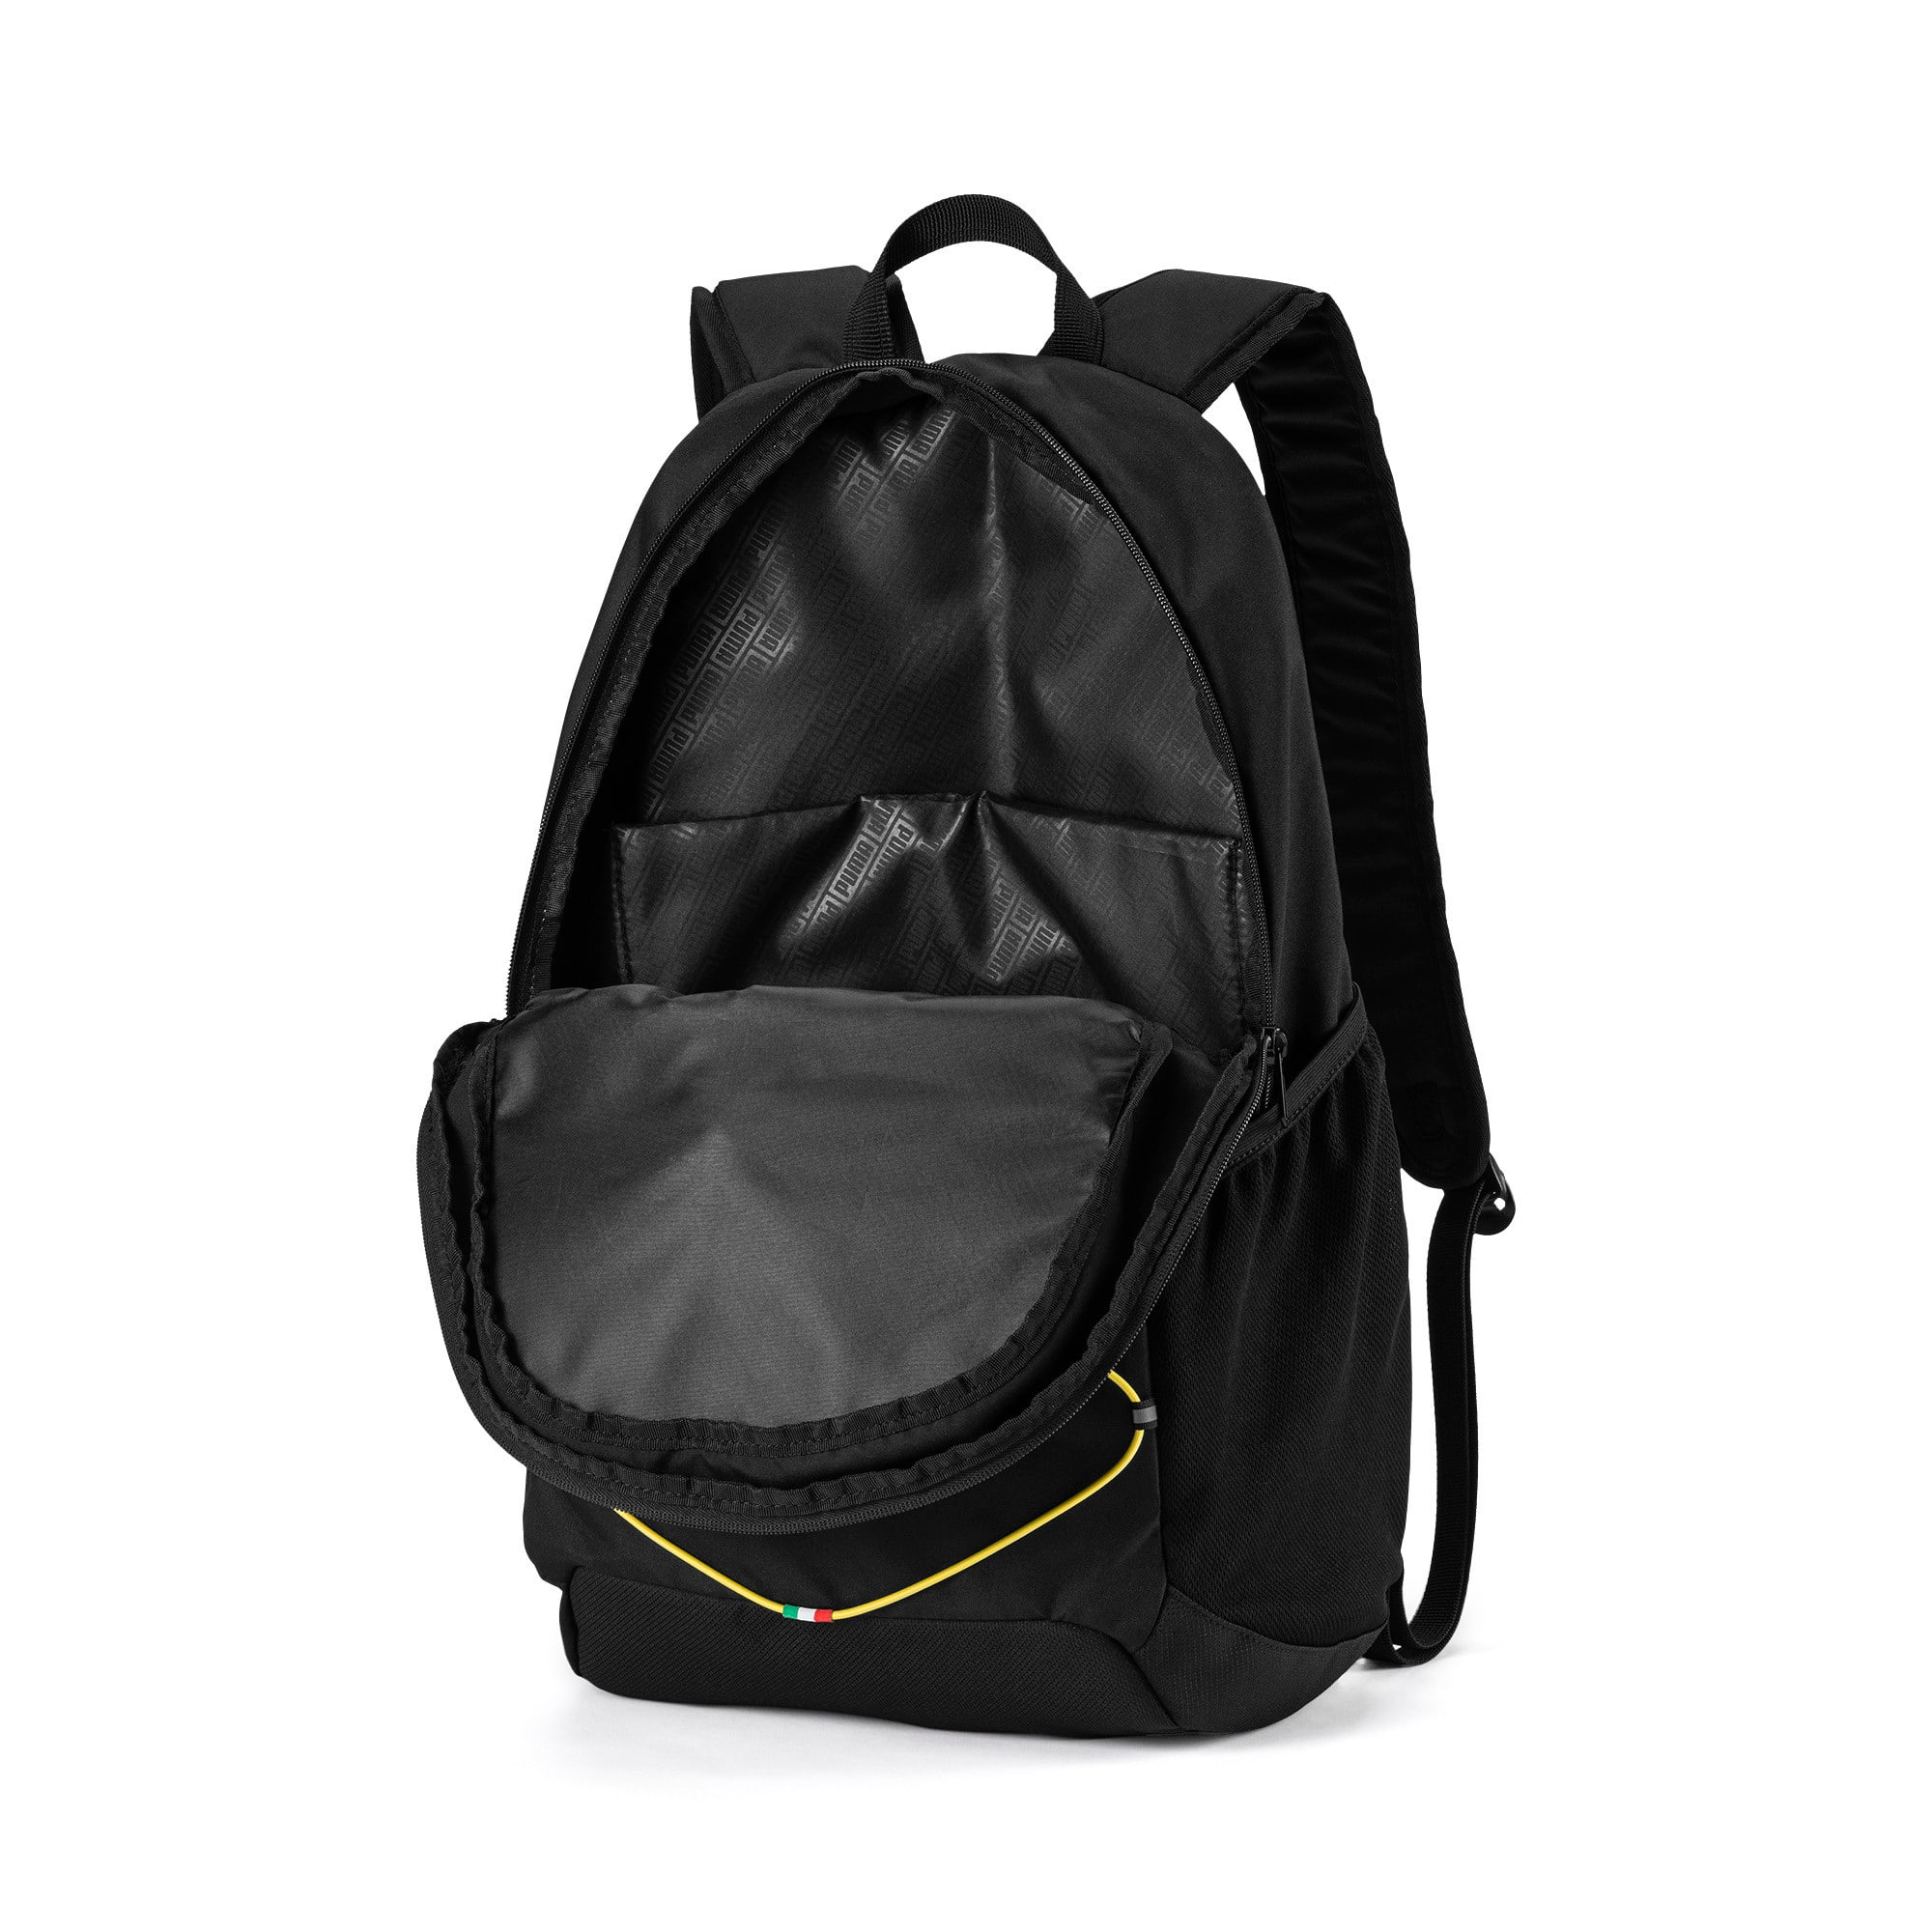 Thumbnail 3 of Ferrari Fanwear Rucksack, Puma Black, medium